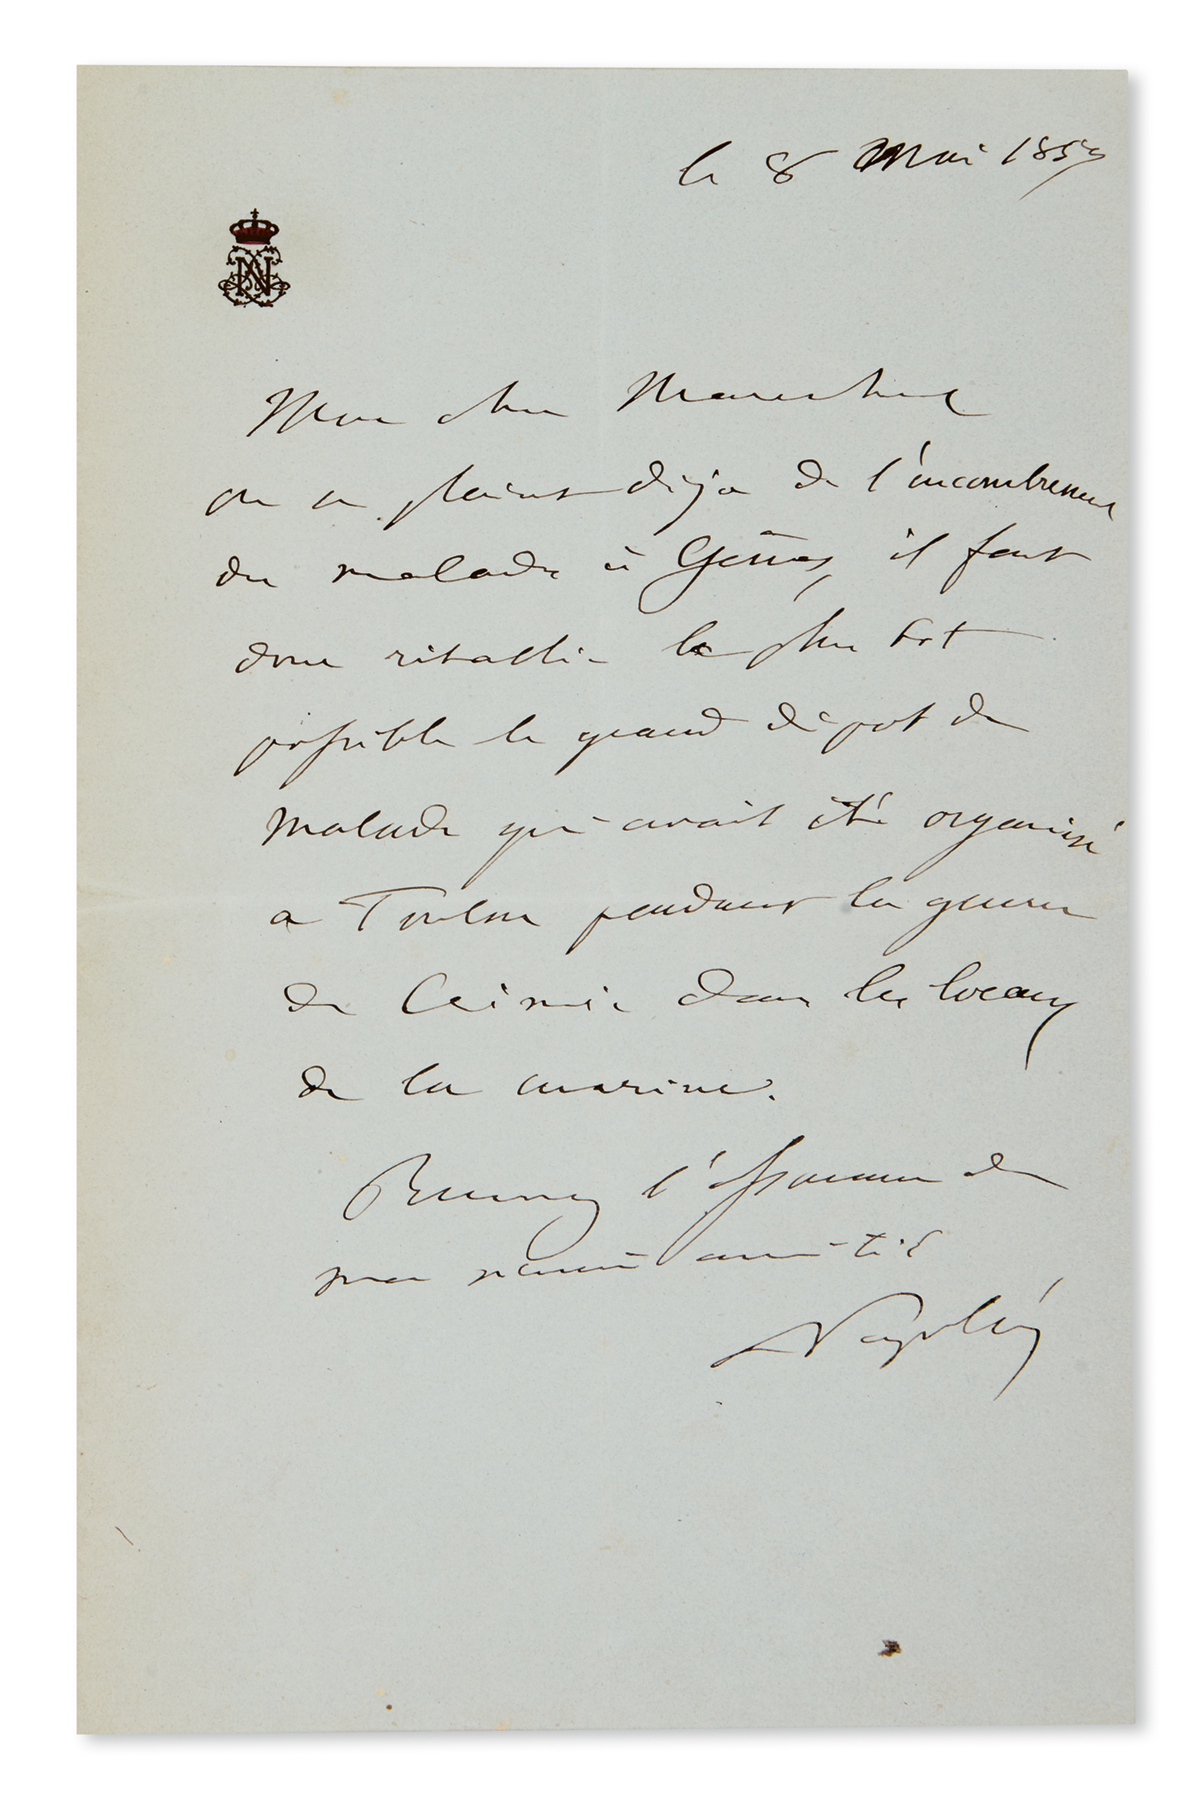 NAPOLÉON III. Autograph Letter Signed, Napoléon, to a Marshal of France (My dear Marshal), in French,